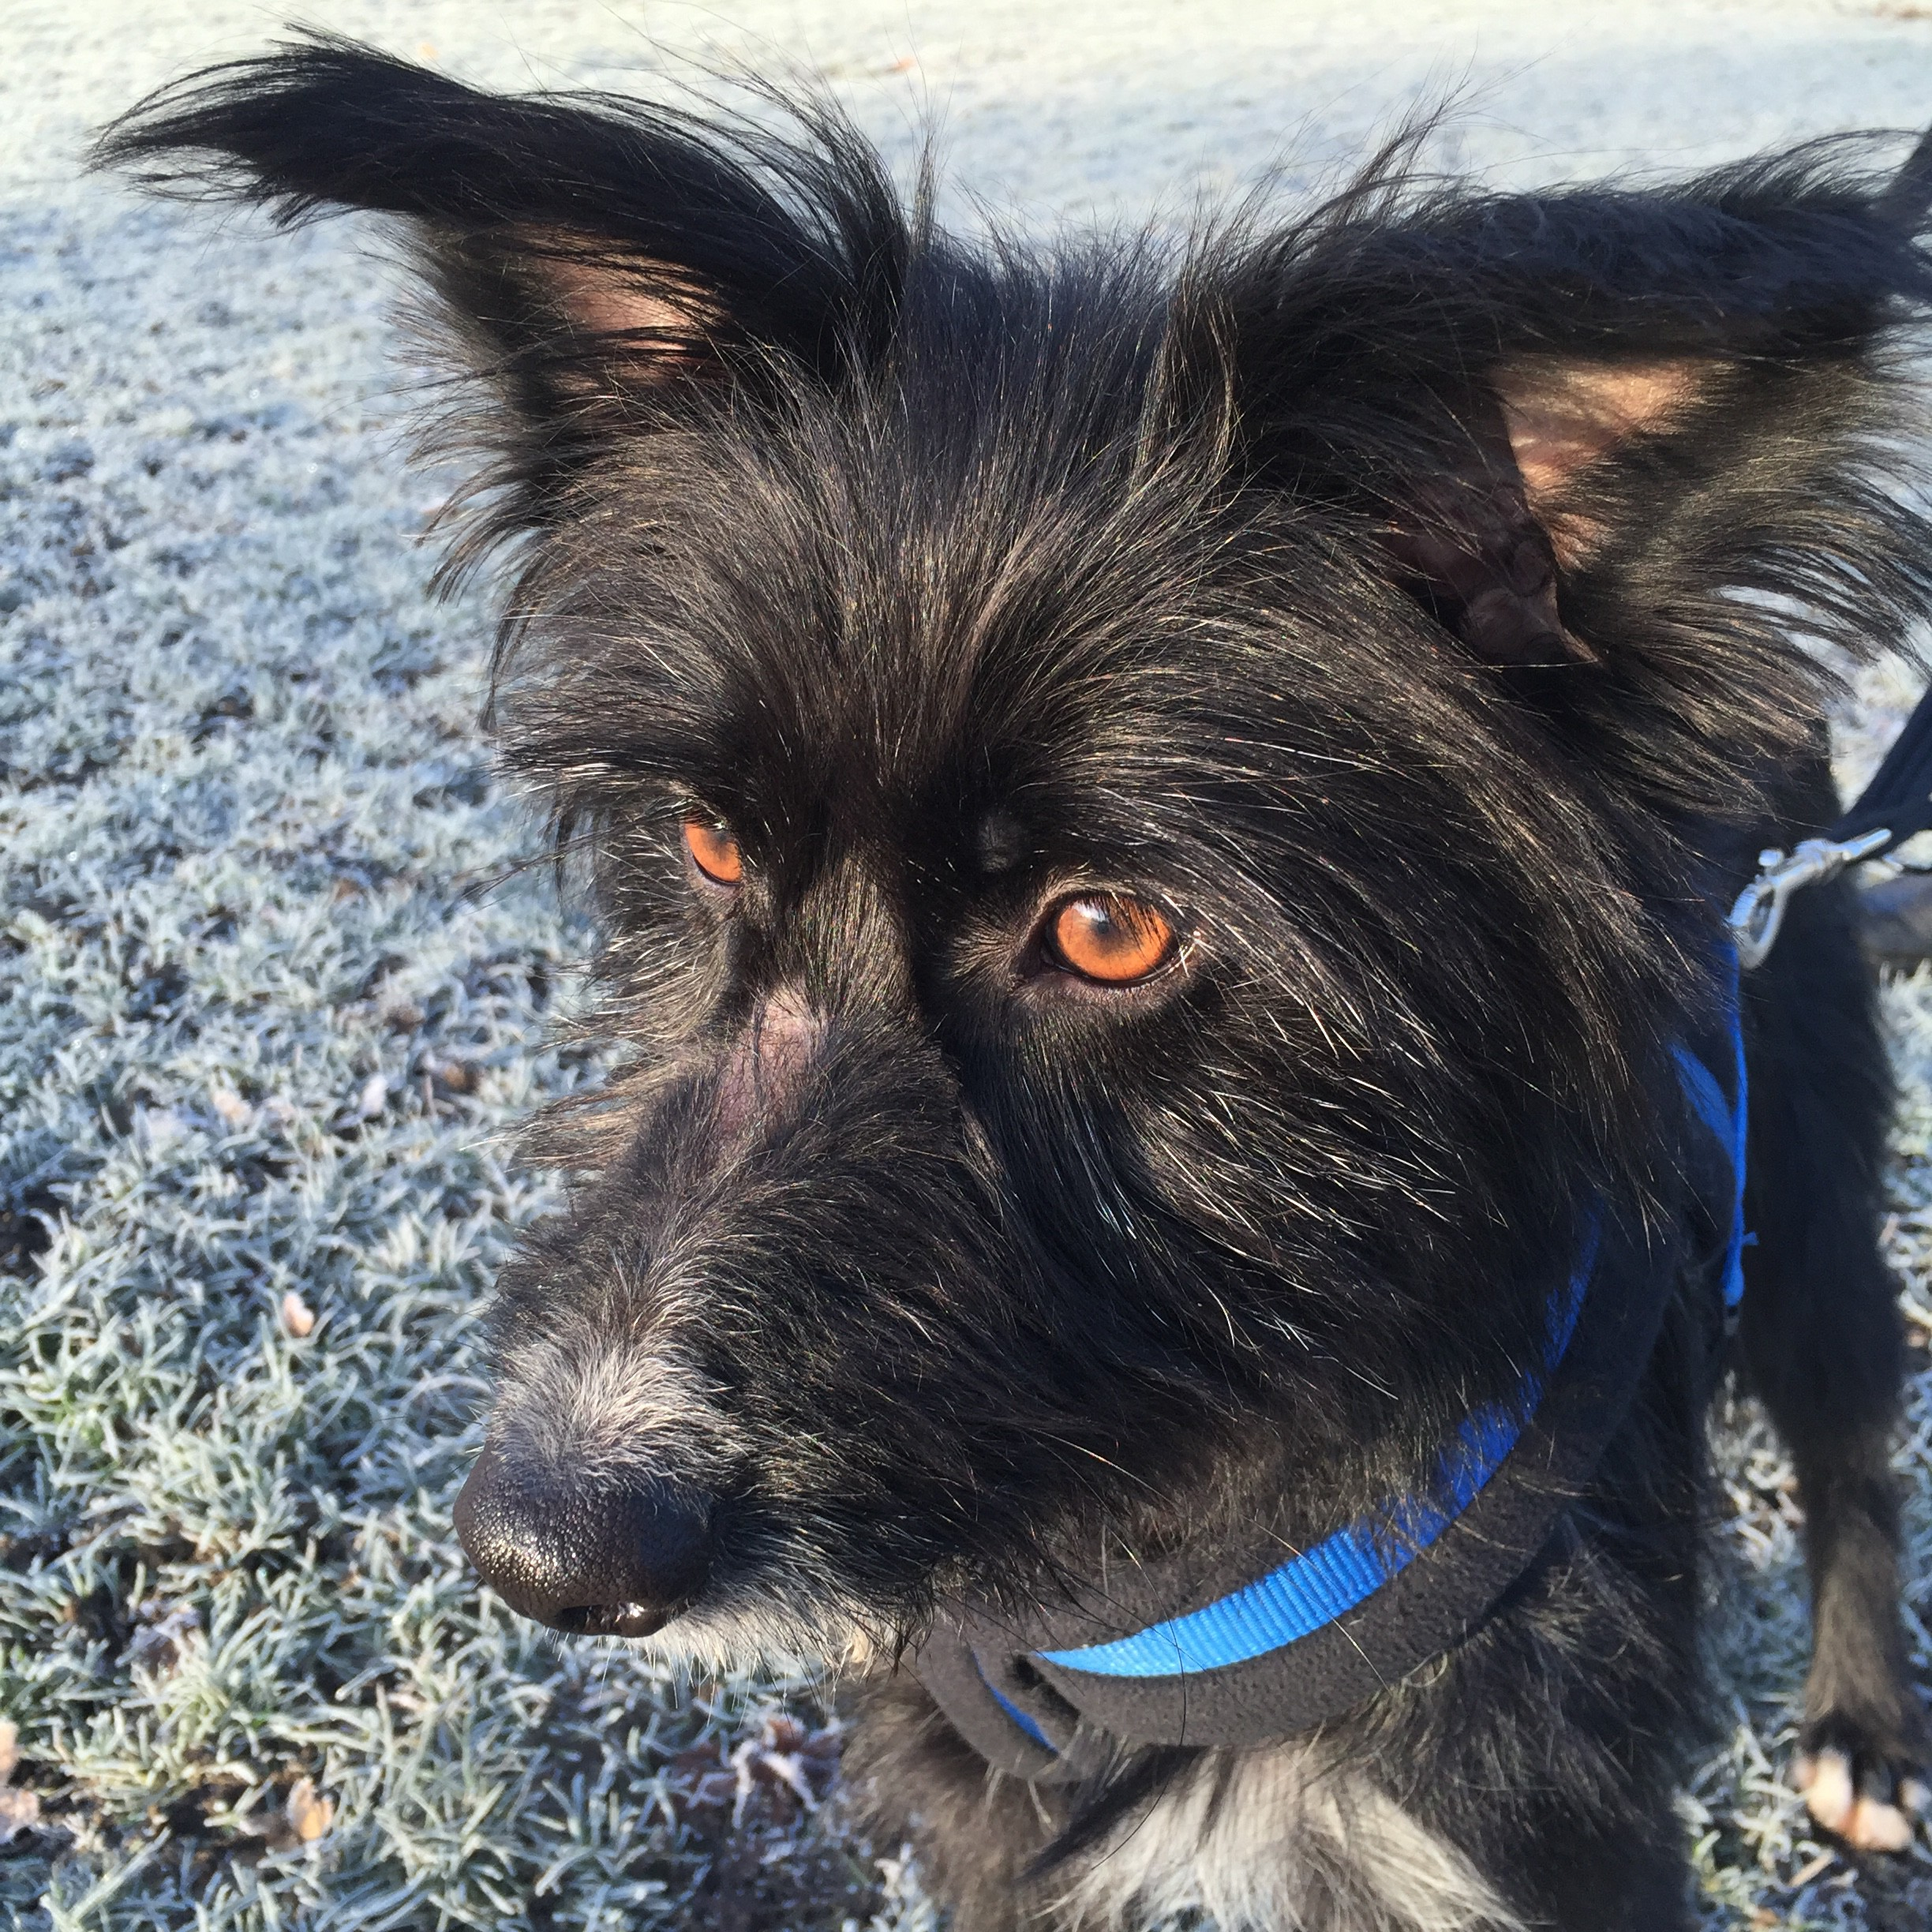 Olly black lurcher rescue dog now available for adoption via Terrier SOS.